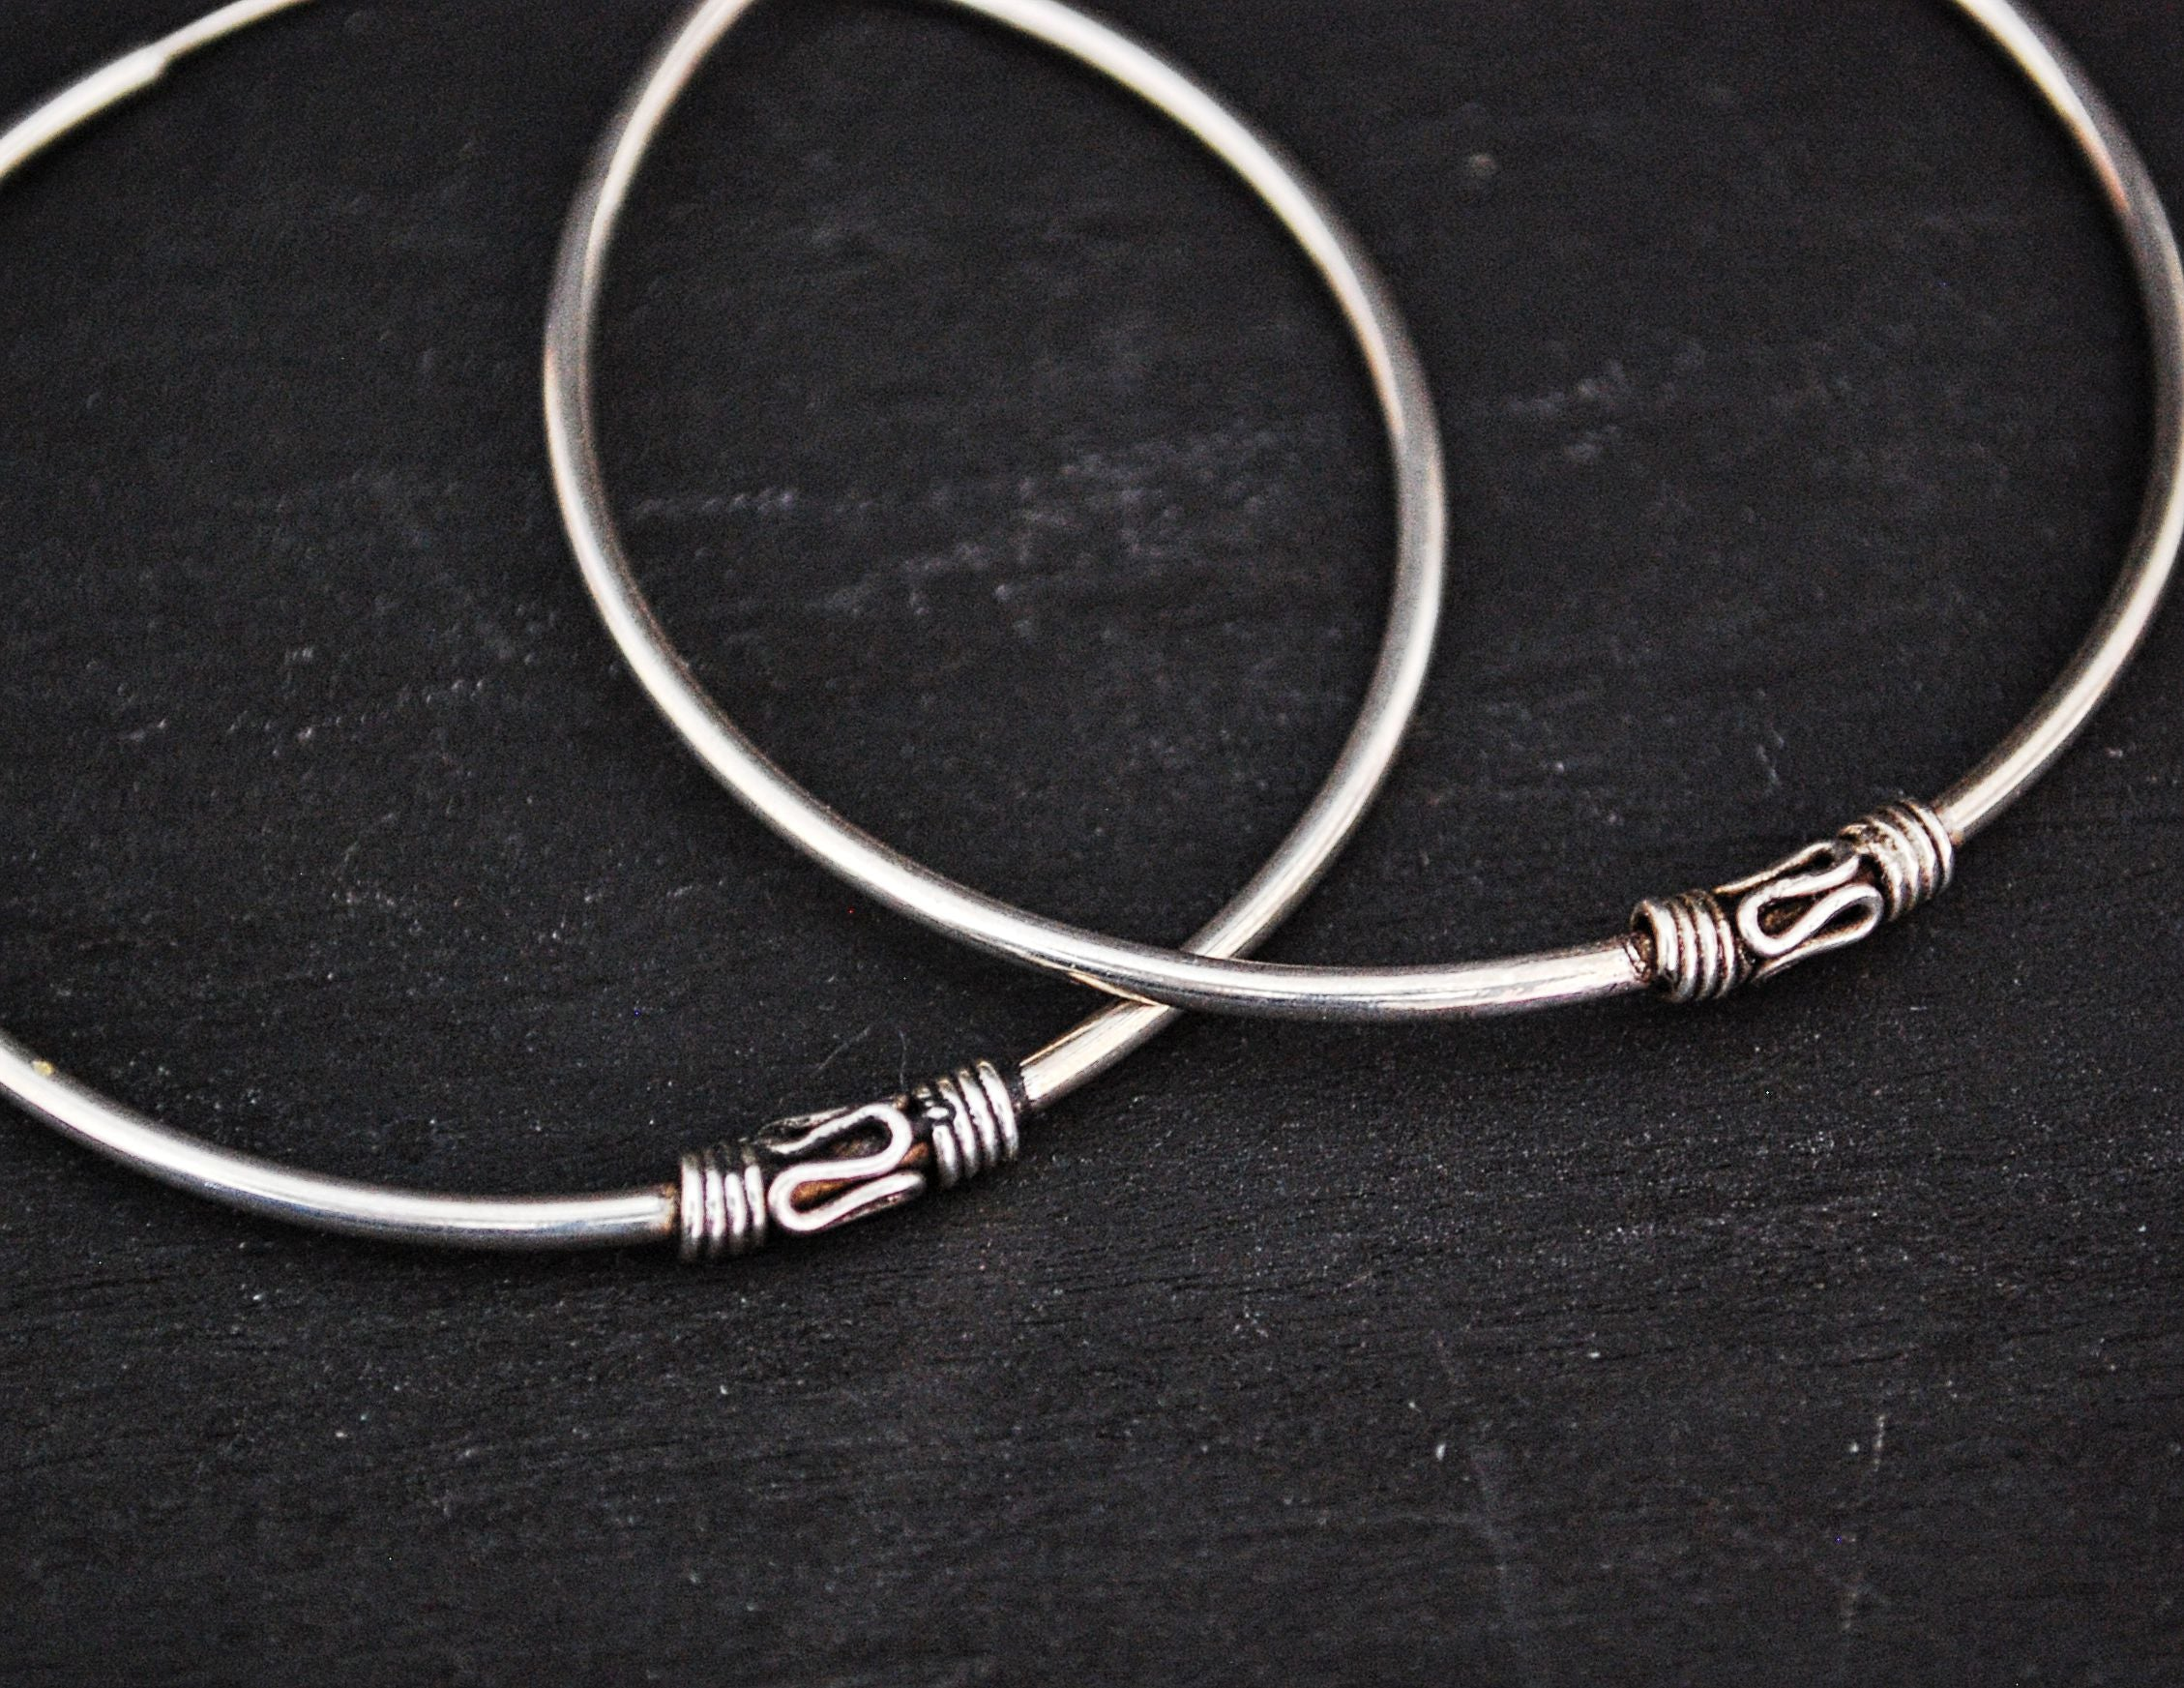 Large Ethnic Bali Hoop Earrings